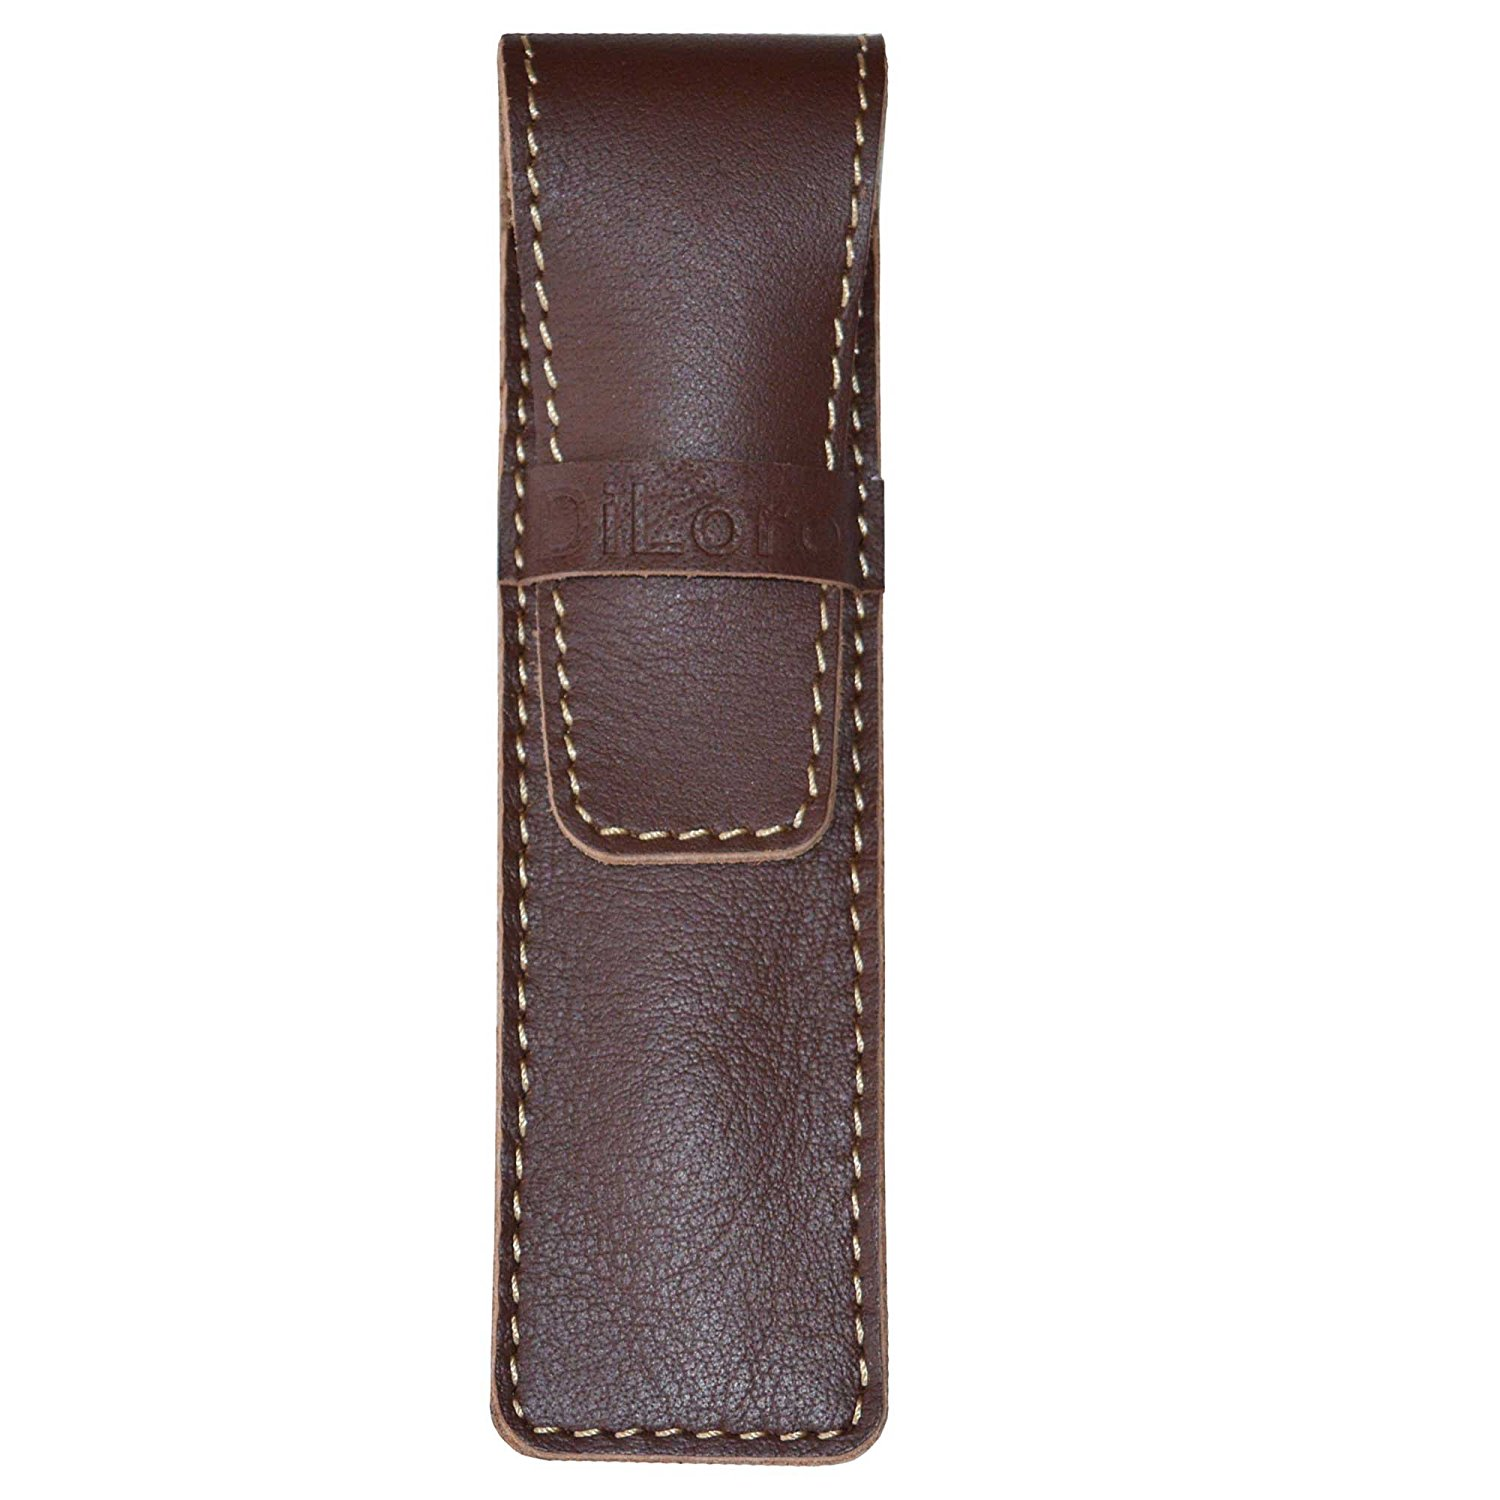 DiLoro Full Grain Top Quality Thick Genuine Leather Single Pen Case Holder Pouch (Buffalo Brown)